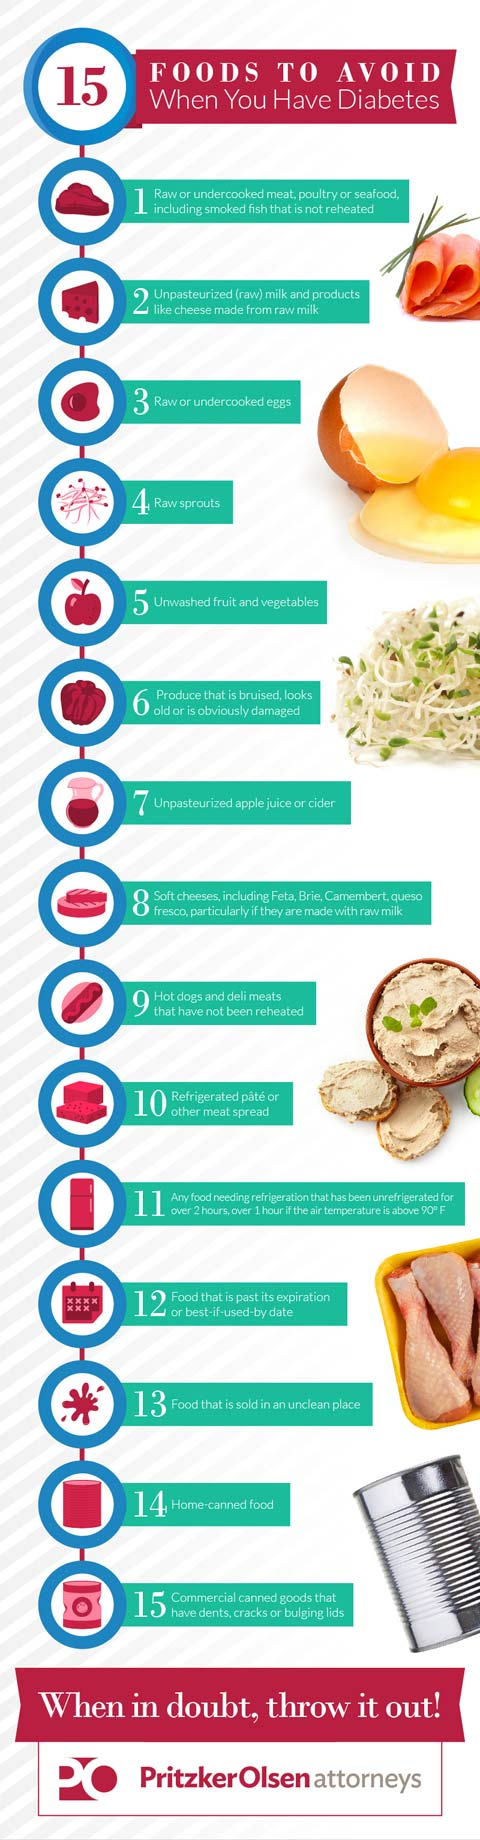 diabetes-food-safety-infographic